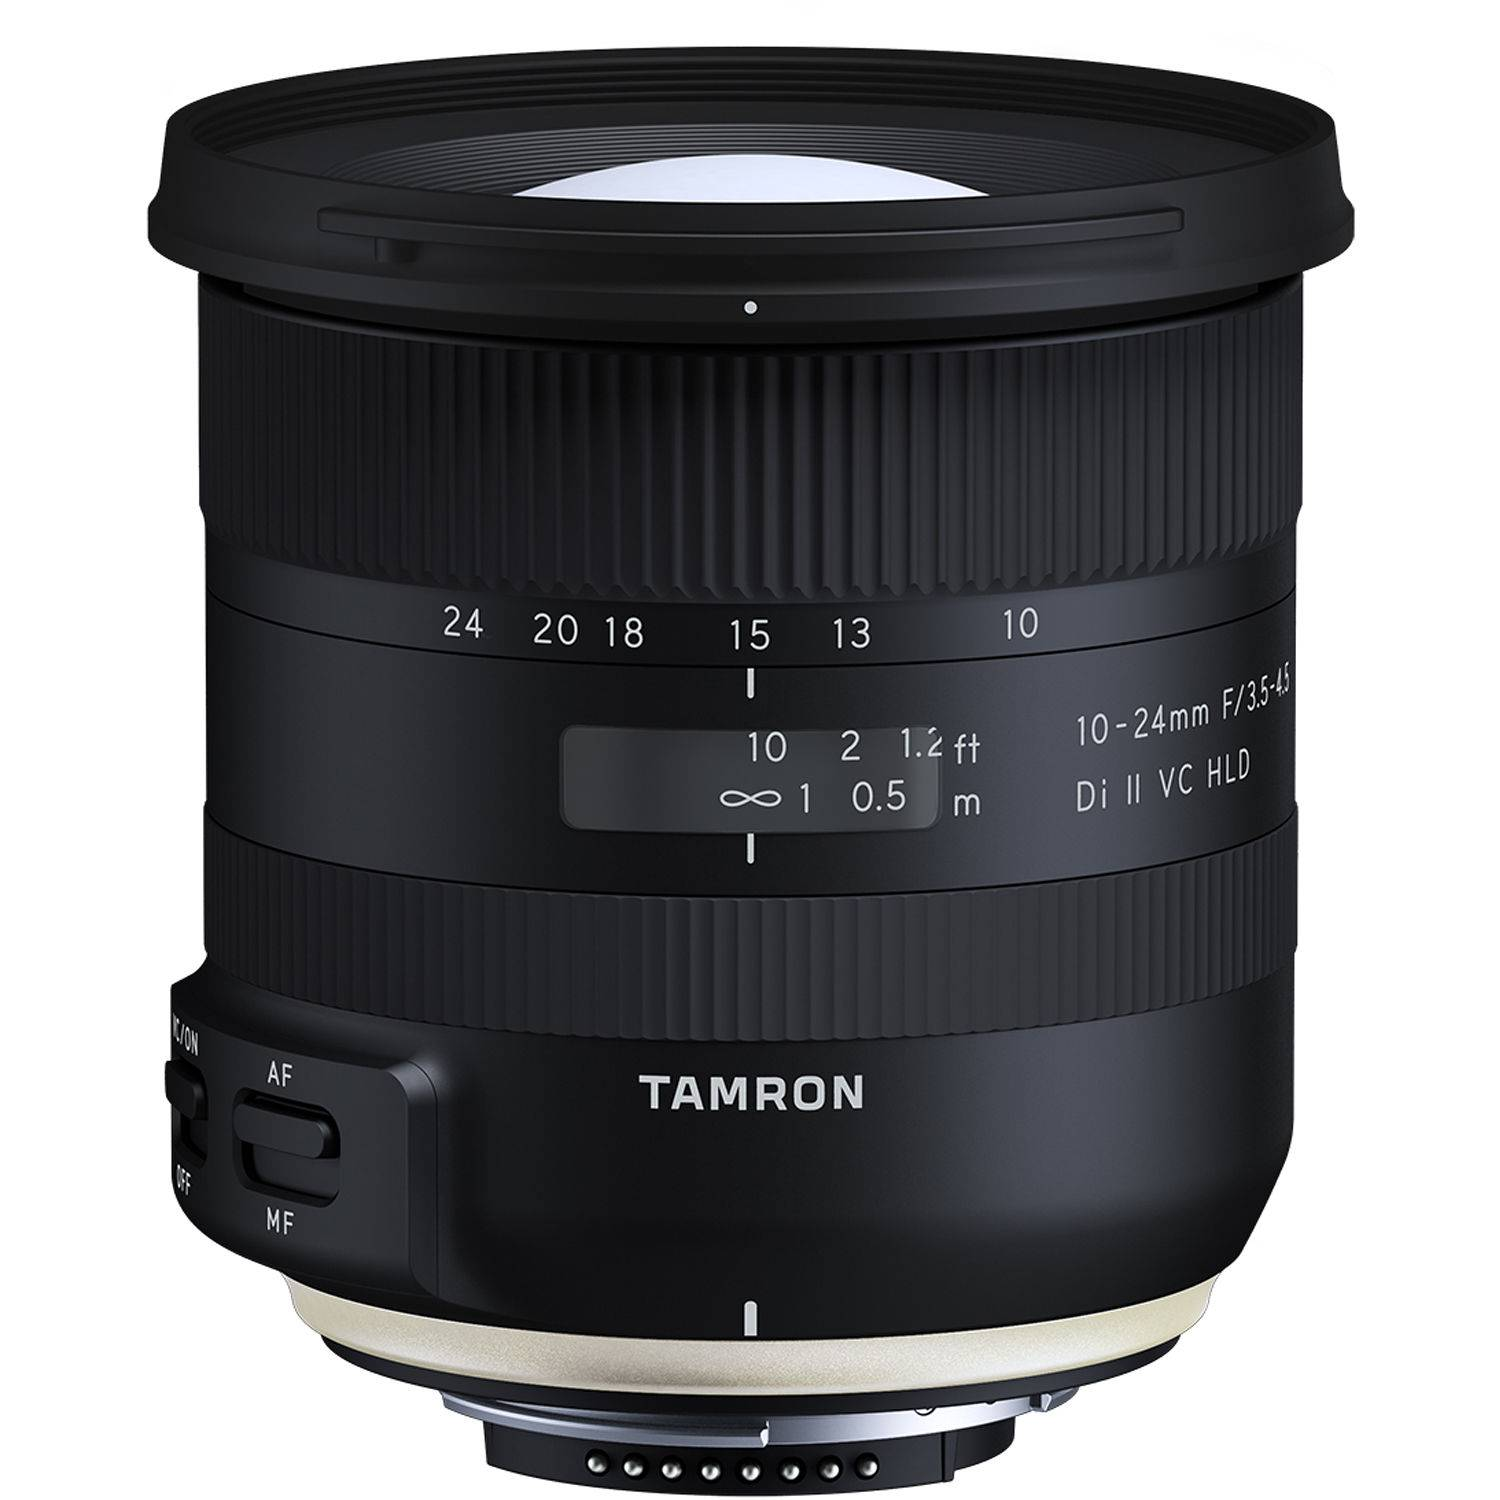 Tamron B023 10-24mm f/3.5-4.5 Di II VC HLD Lens for Canon